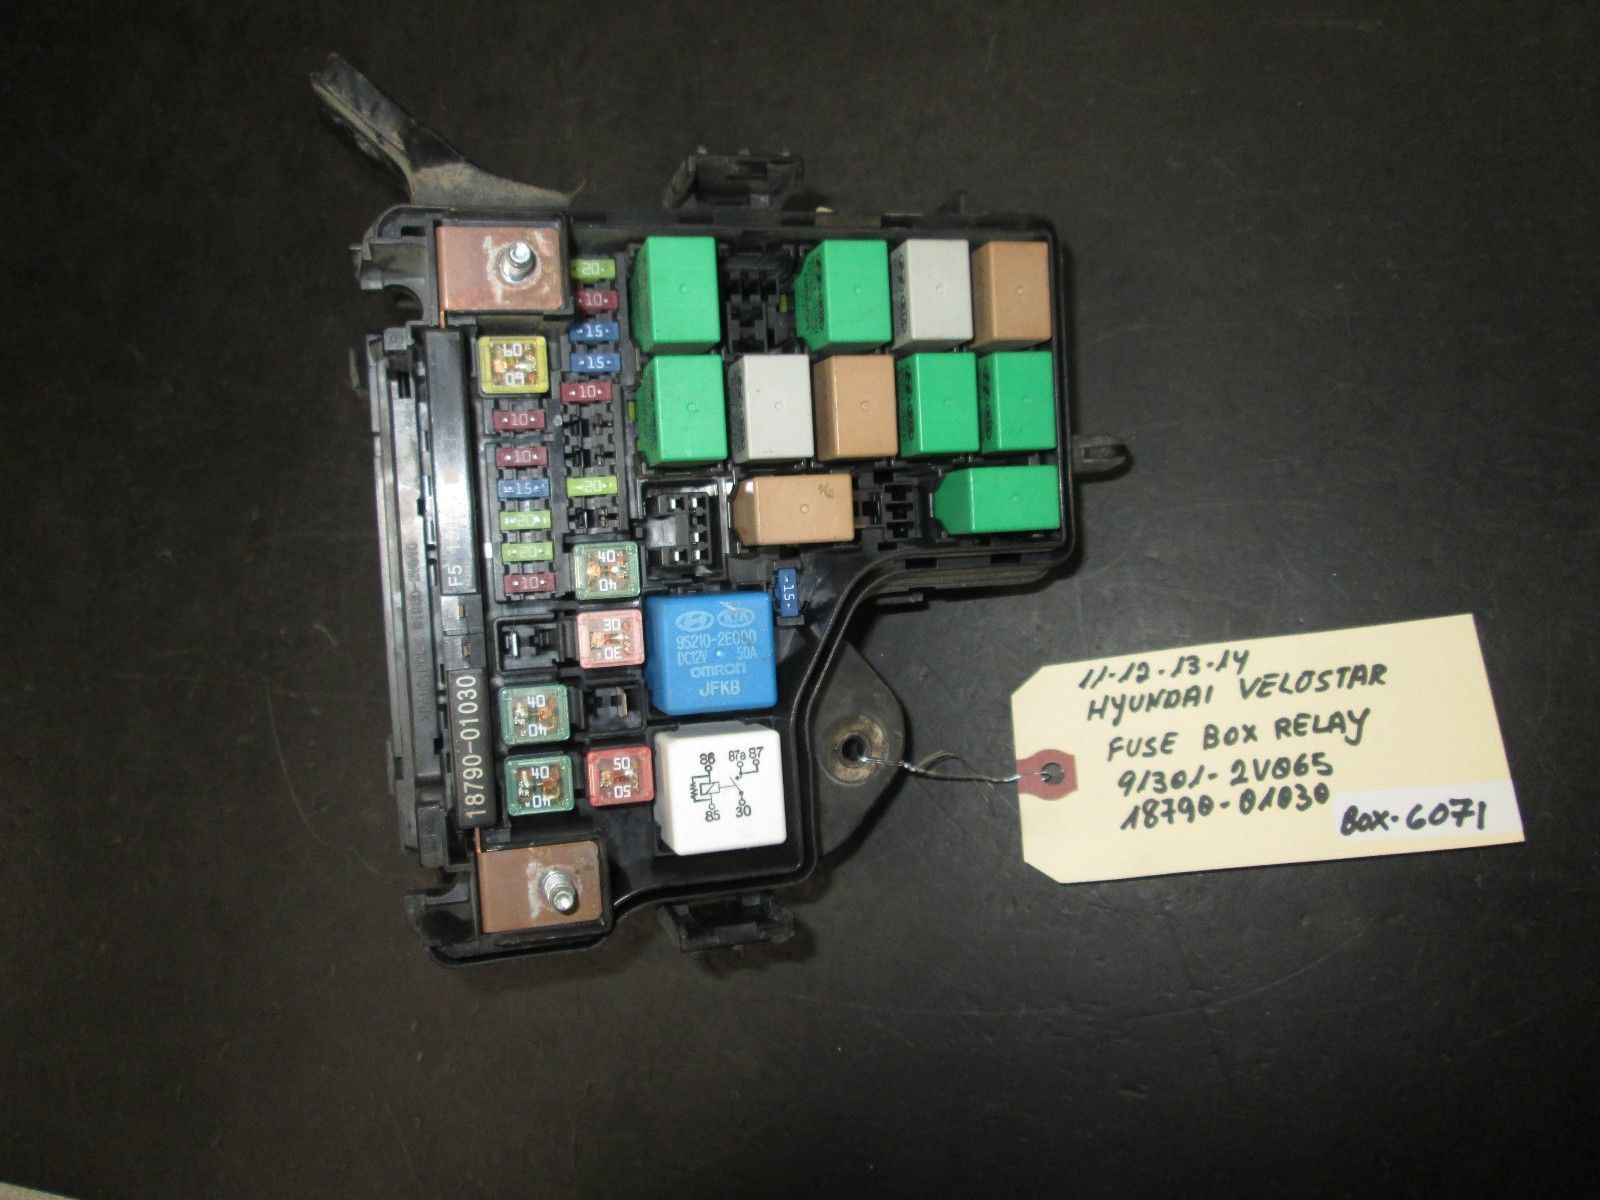 Primary image for 11 12 13 14 HYUNDAI VELOSTER 1.6 FUSE BOX RELAY #91301-2V065,18790-01030